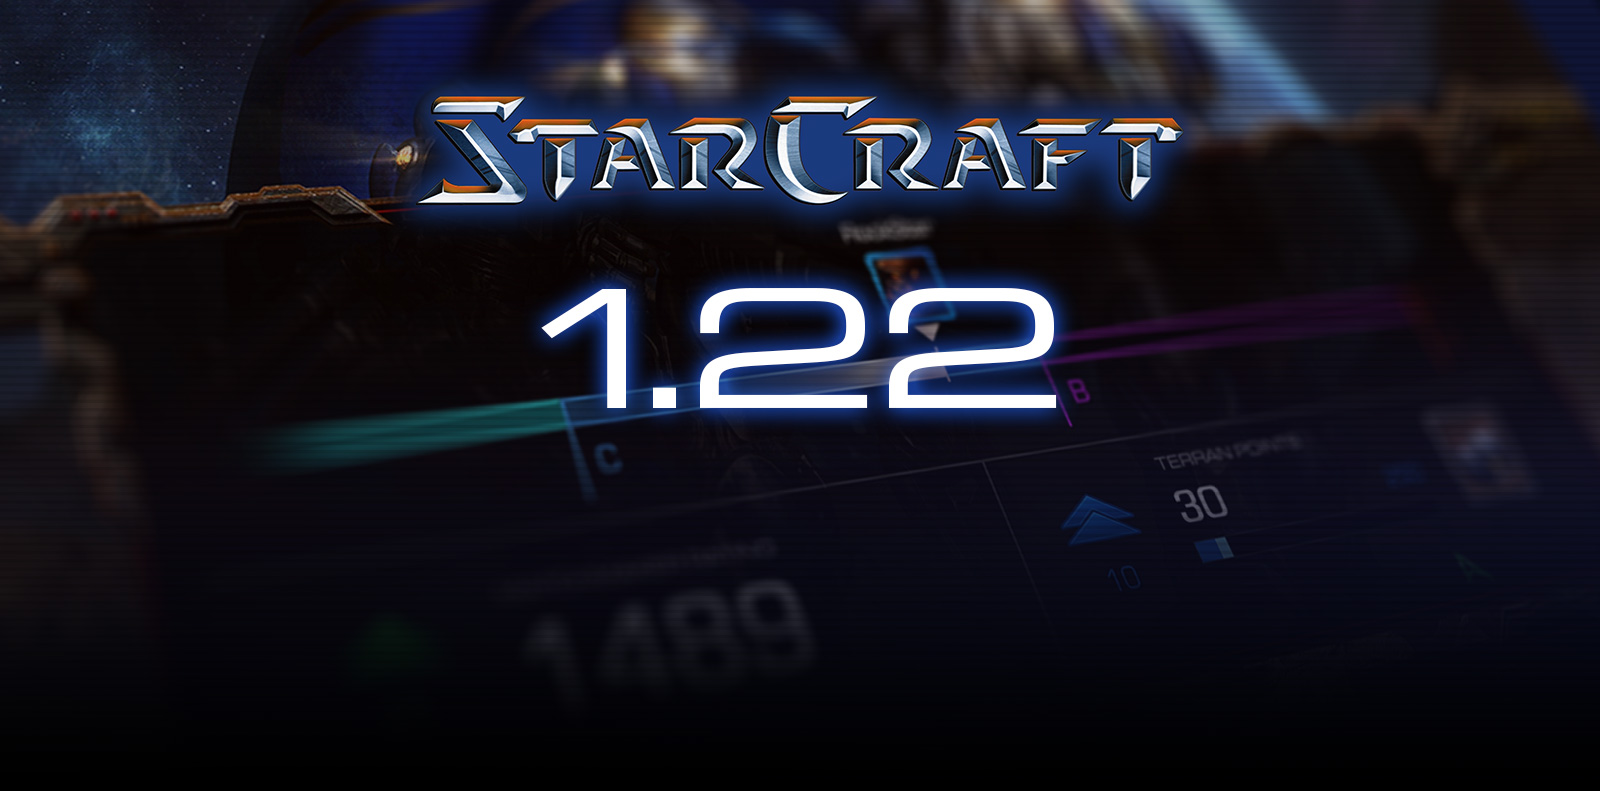 Note della patch 1.22.0 di StarCraft: Remastered